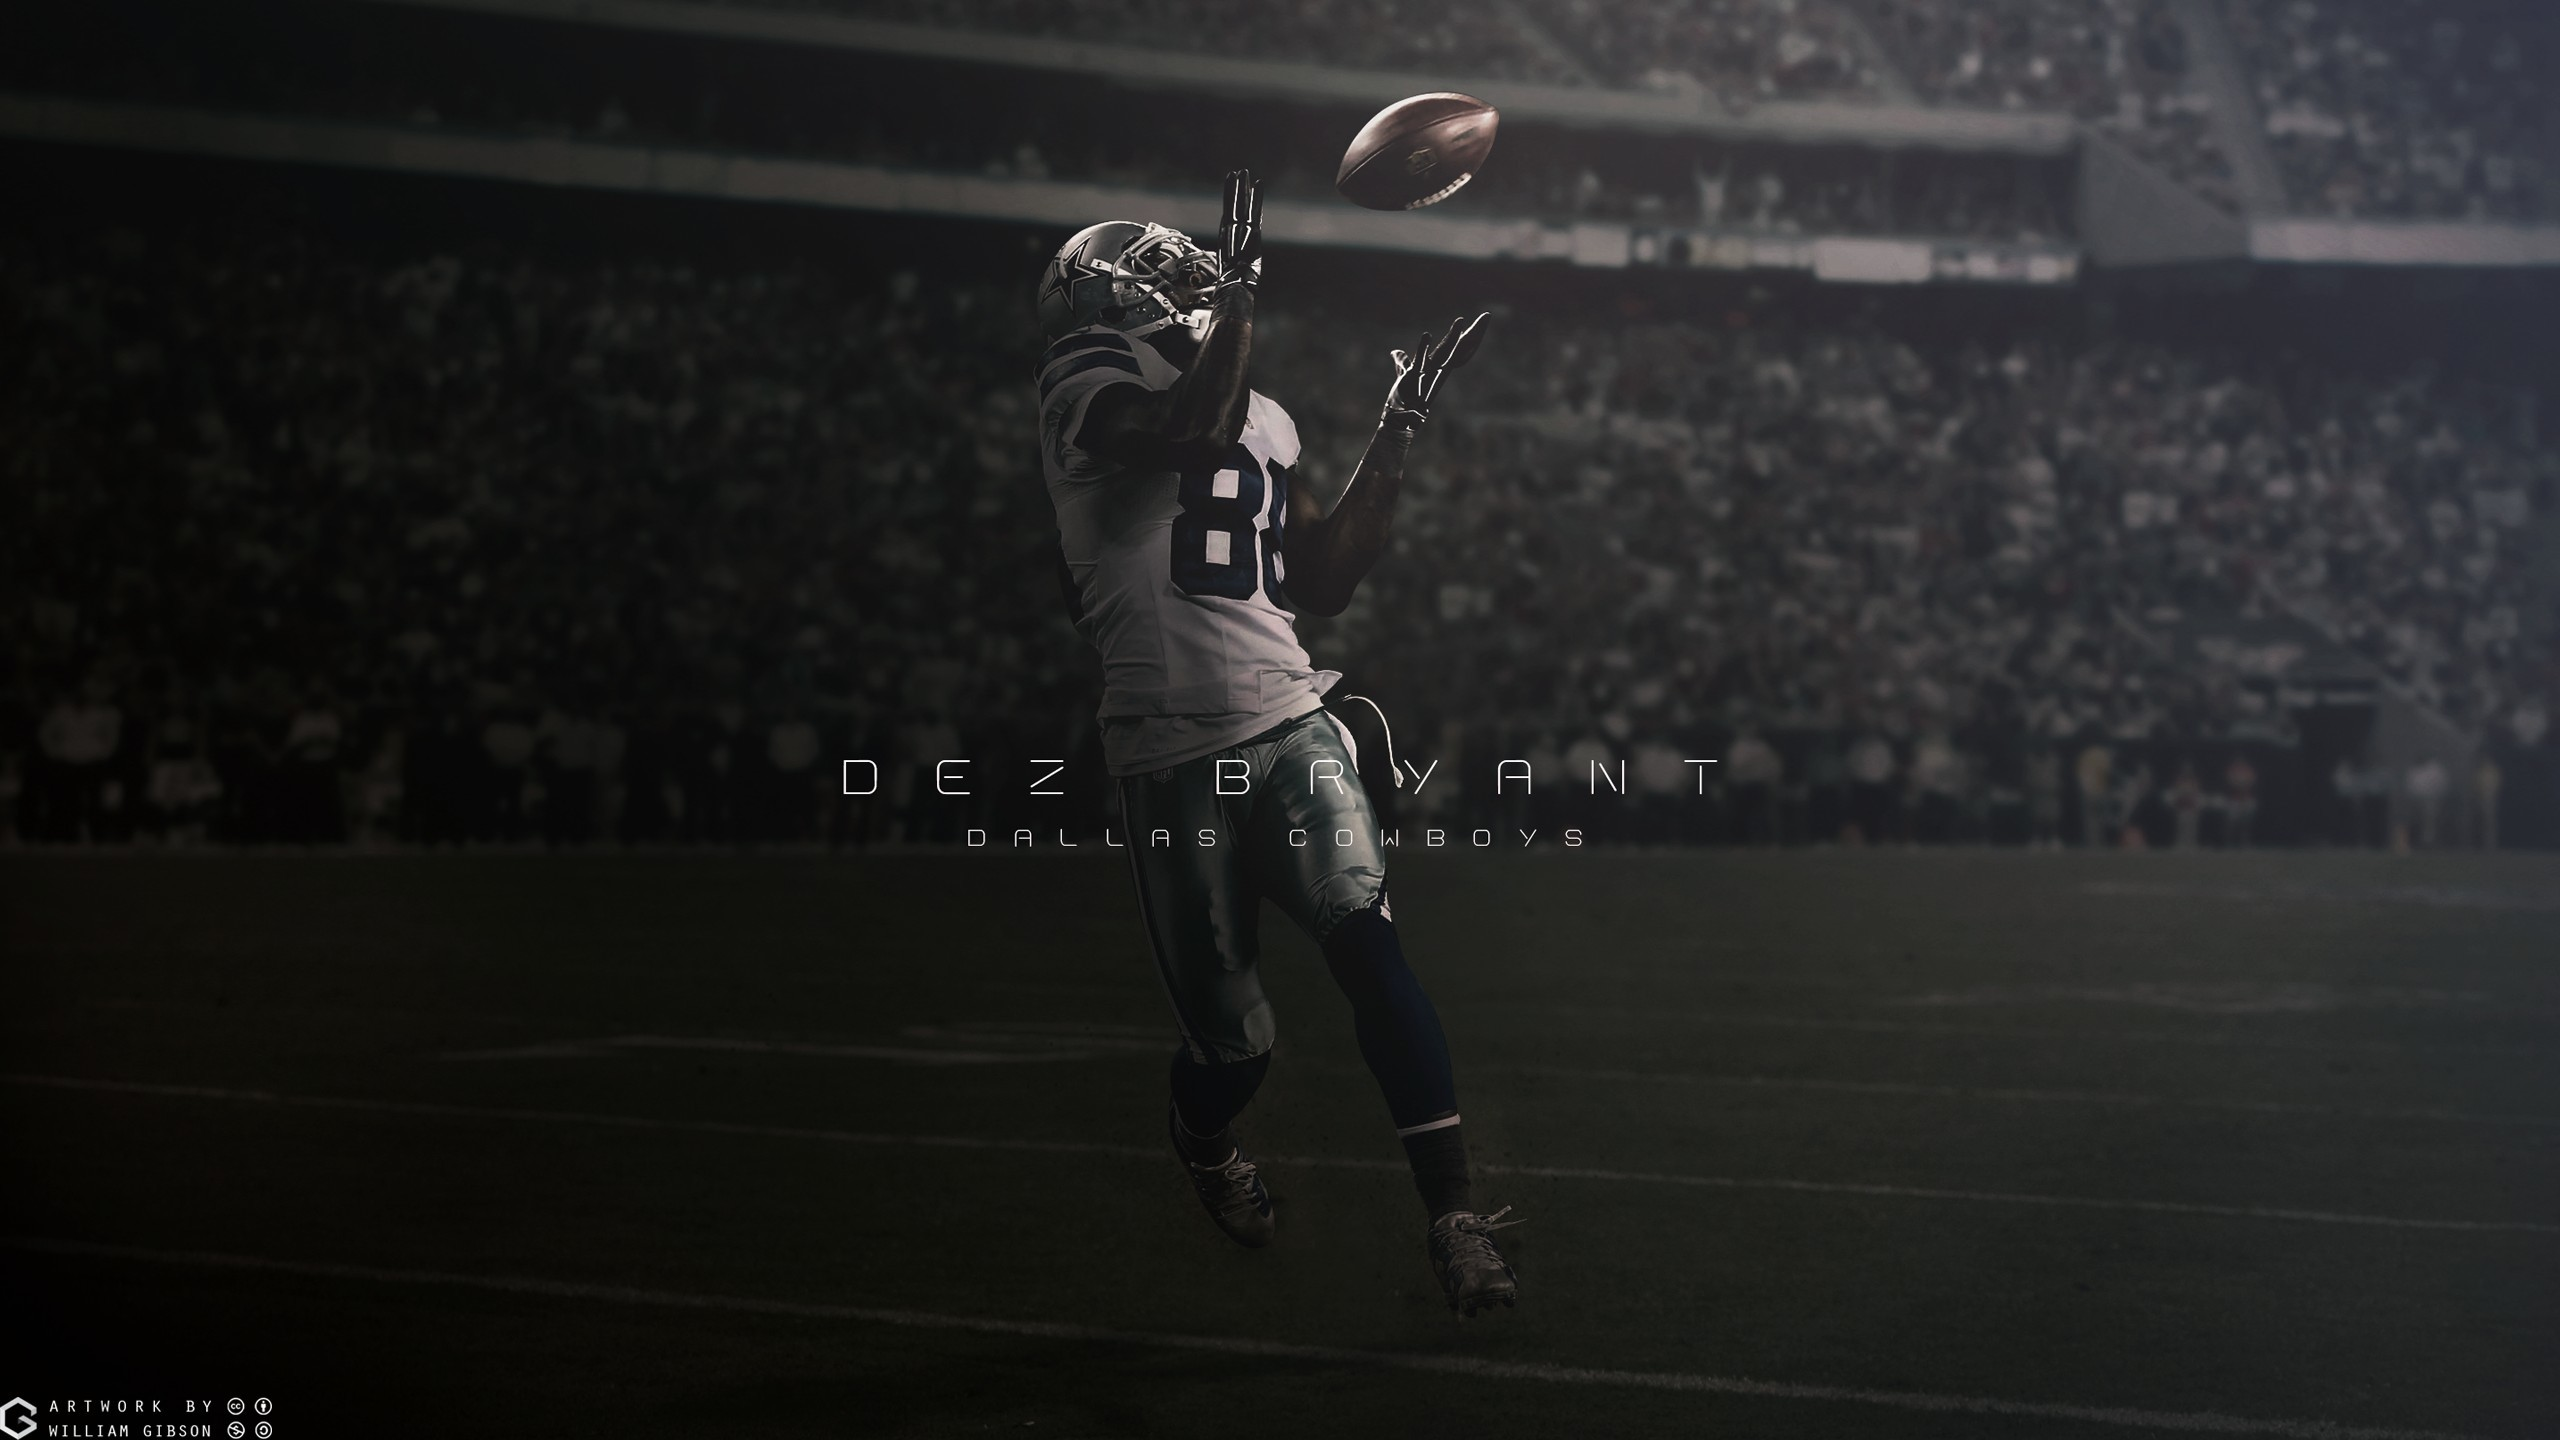 2560x1440 Dez Bryant Wallpapers